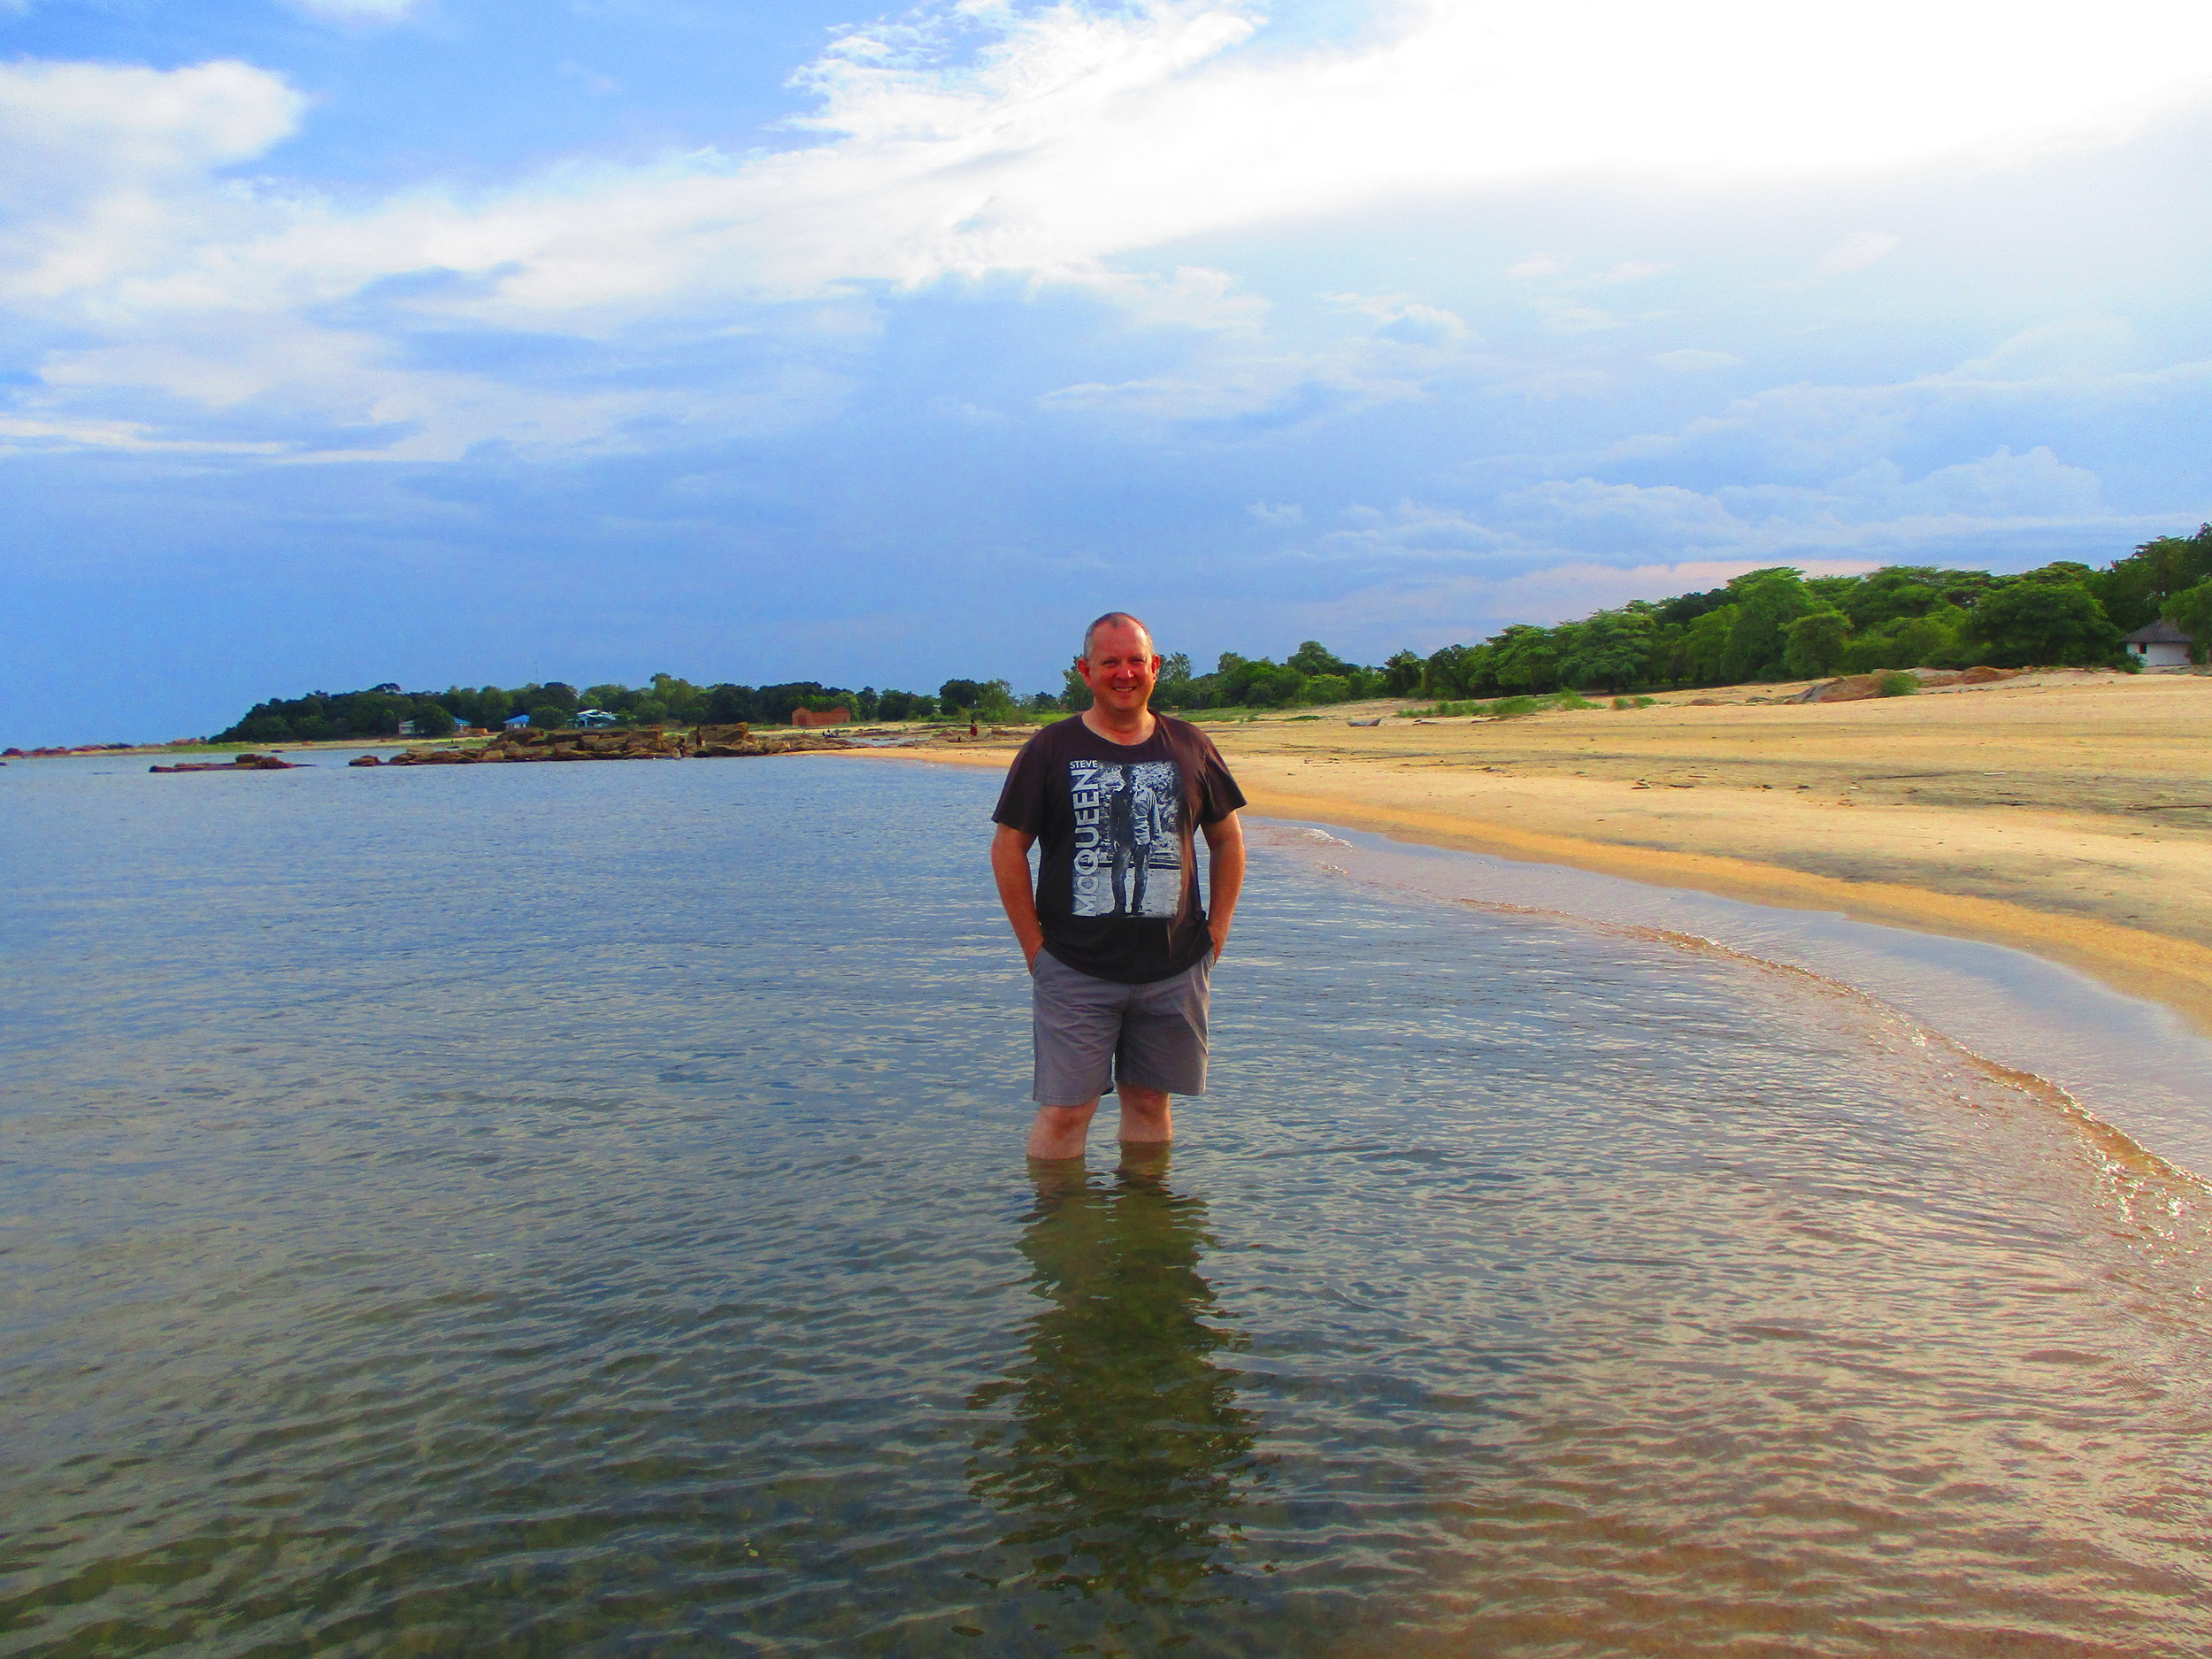 Lake Malawi, lovely although there are brain eating parasites in the water